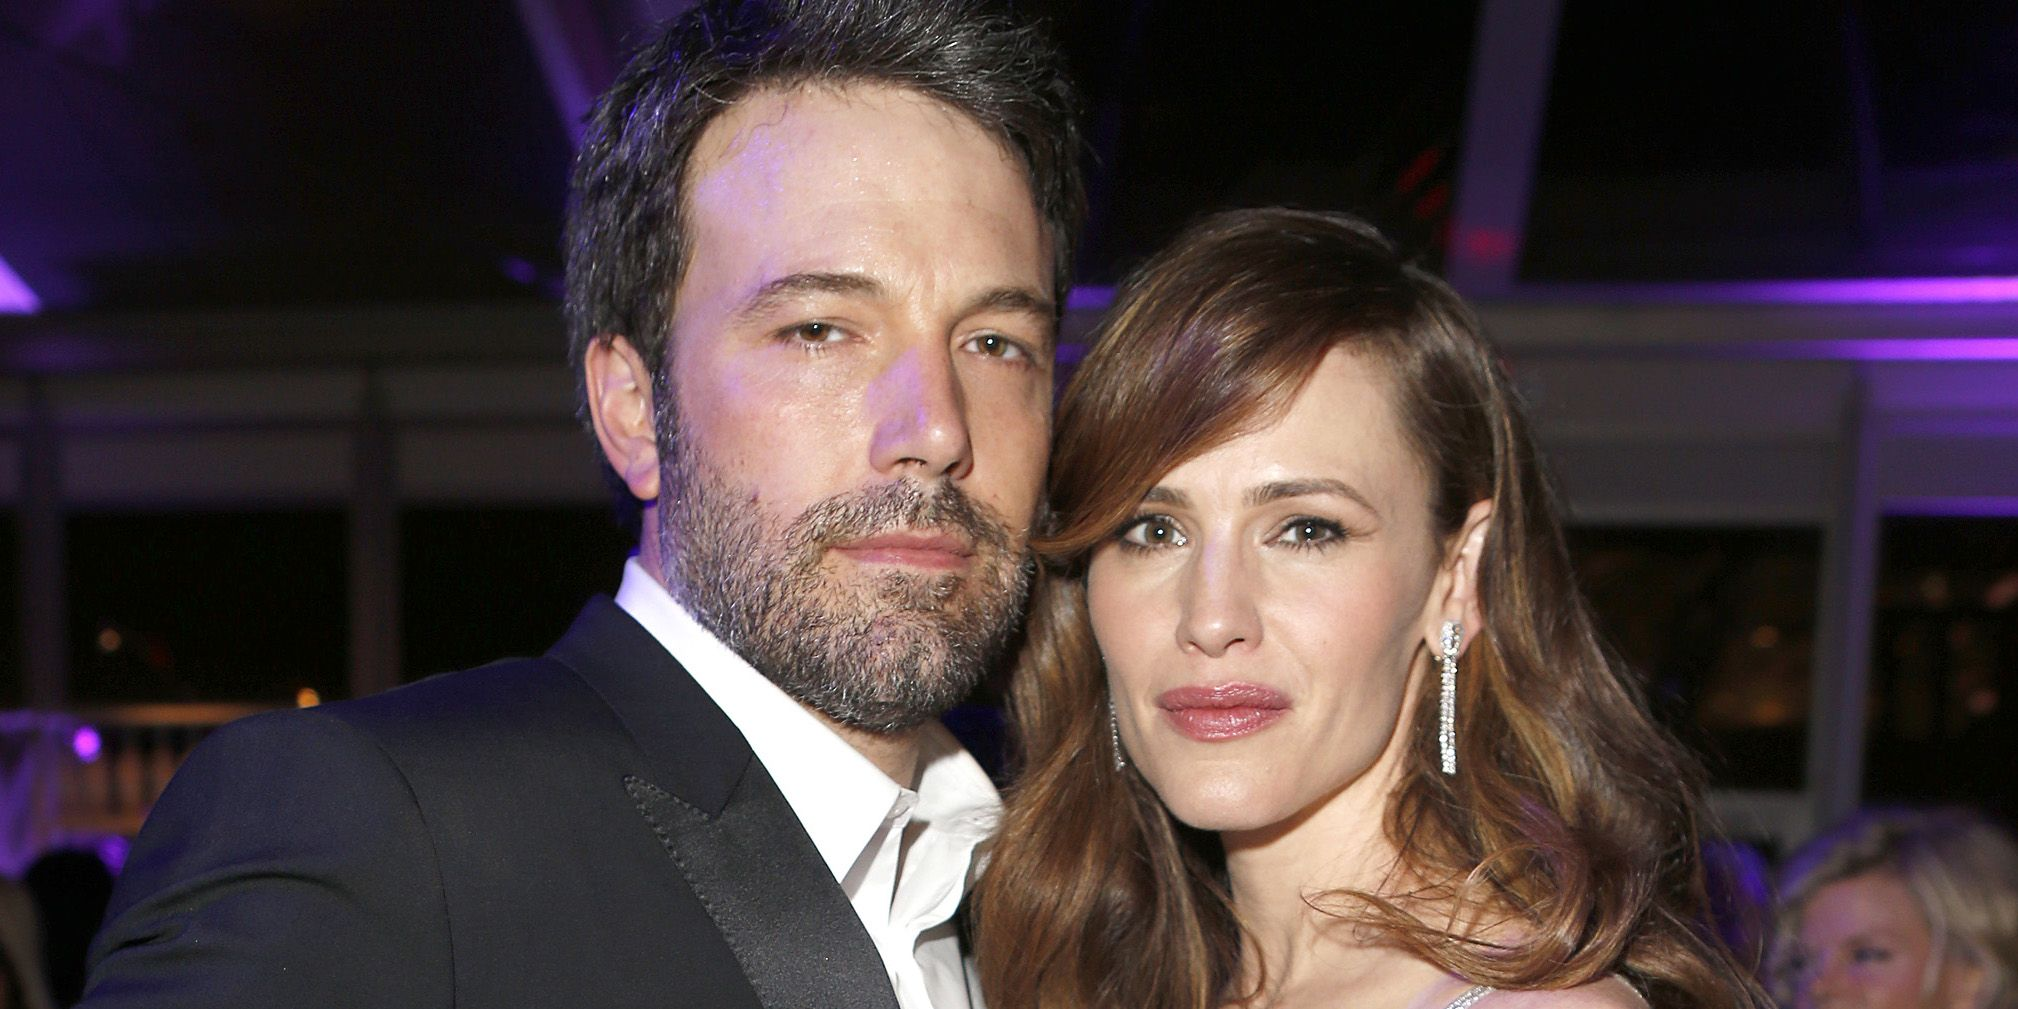 Ben Affleck Reportedly Wants Jennifer Garner Back but She Is Not Having It